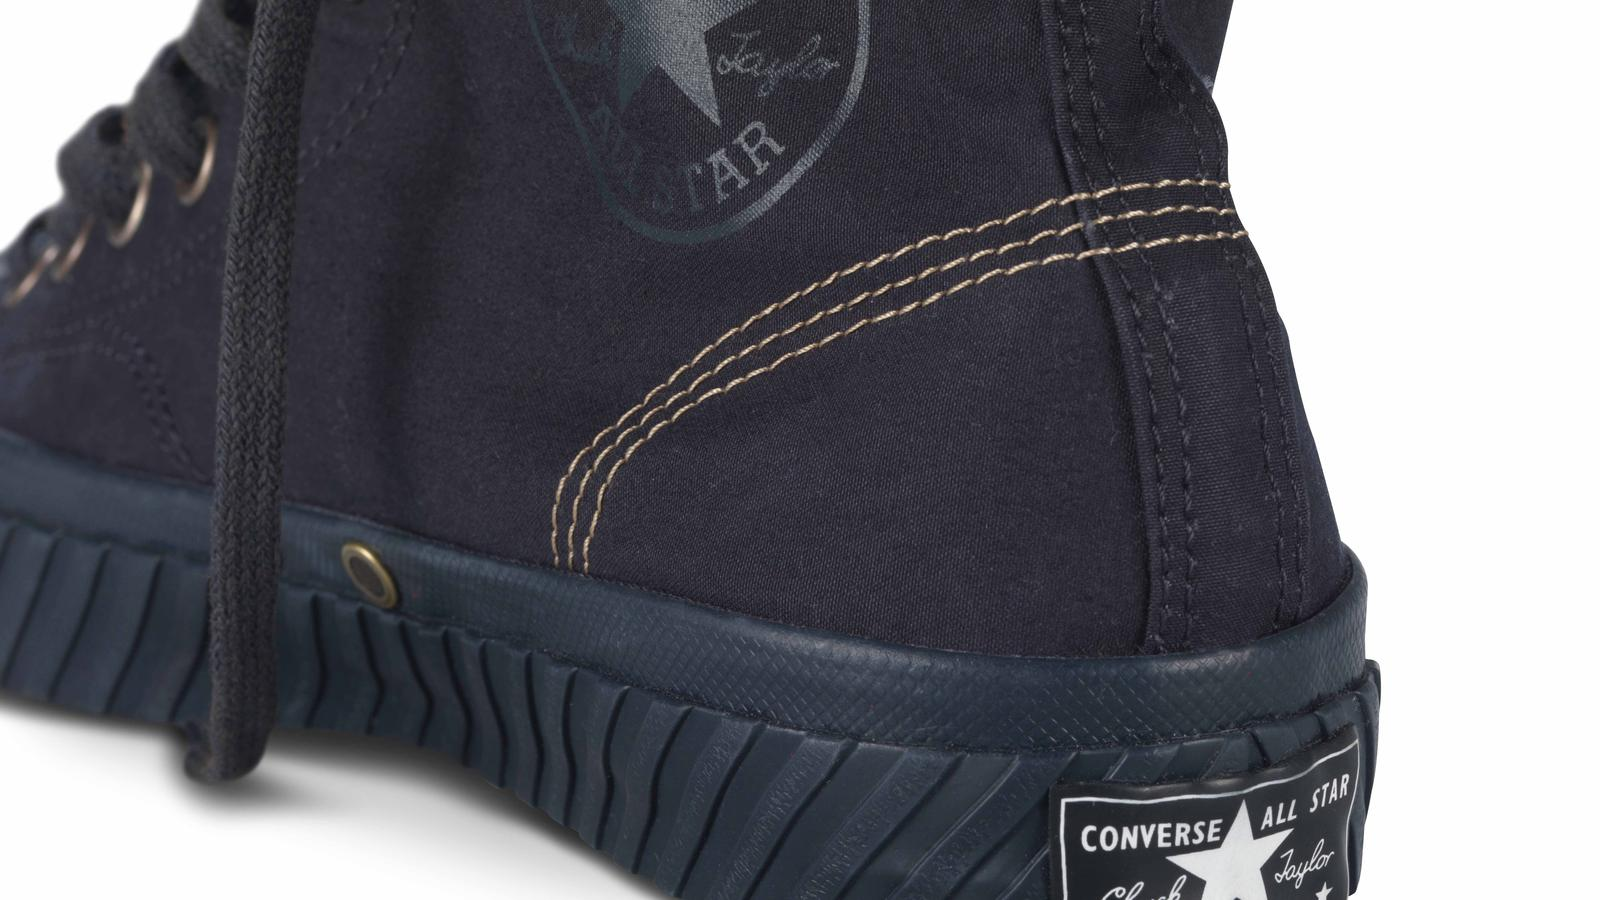 Nigel Cabourn For Converse Bosey Boot. Back Detail Original